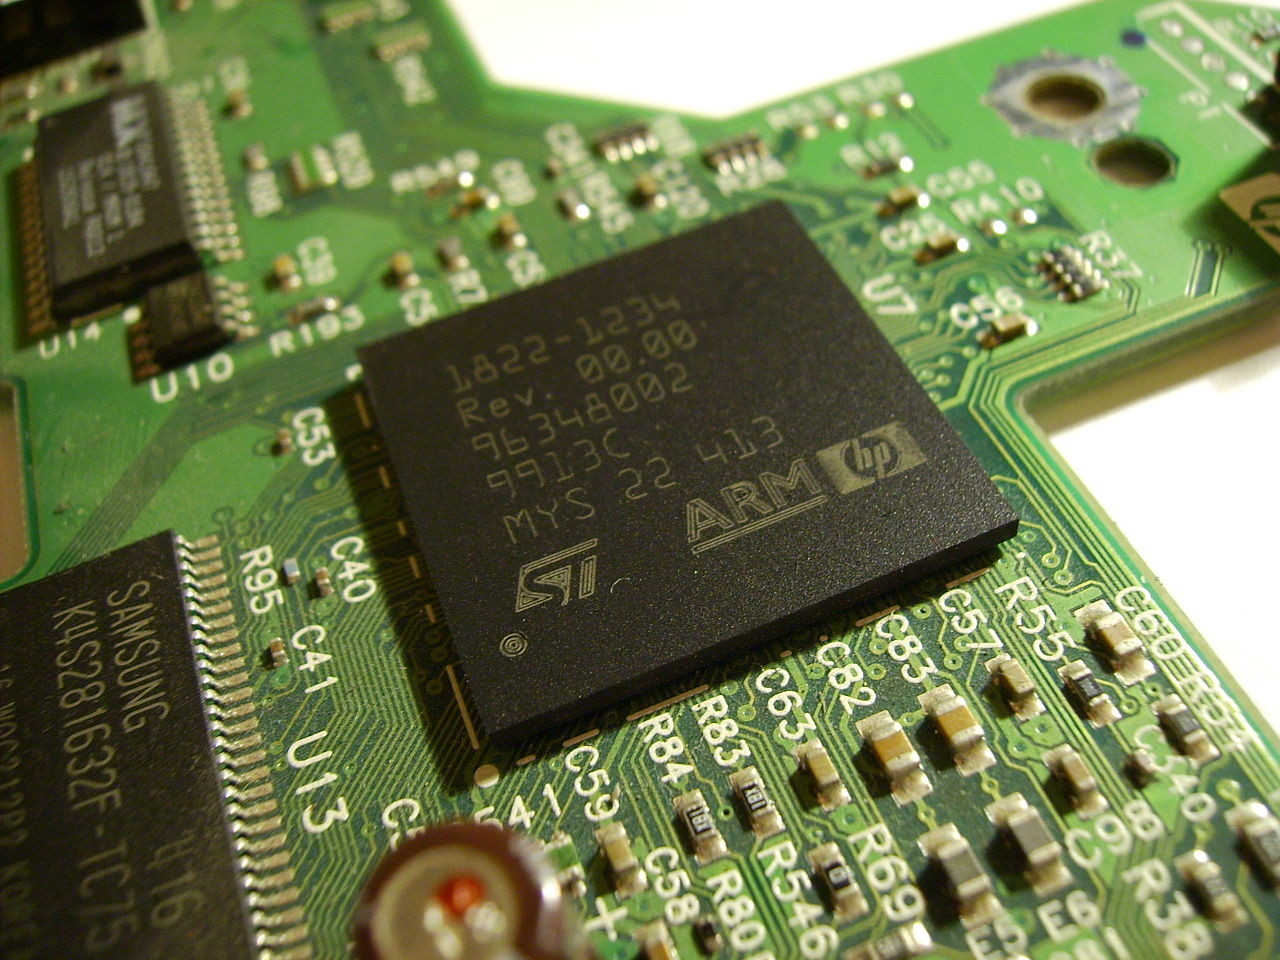 ARM processor, photo by Socram8888 (Own work) [CC BY 2.0 (http://creativecommons.org/licenses/by/2.0)], via Wikimedia Commons, 26 August 2008